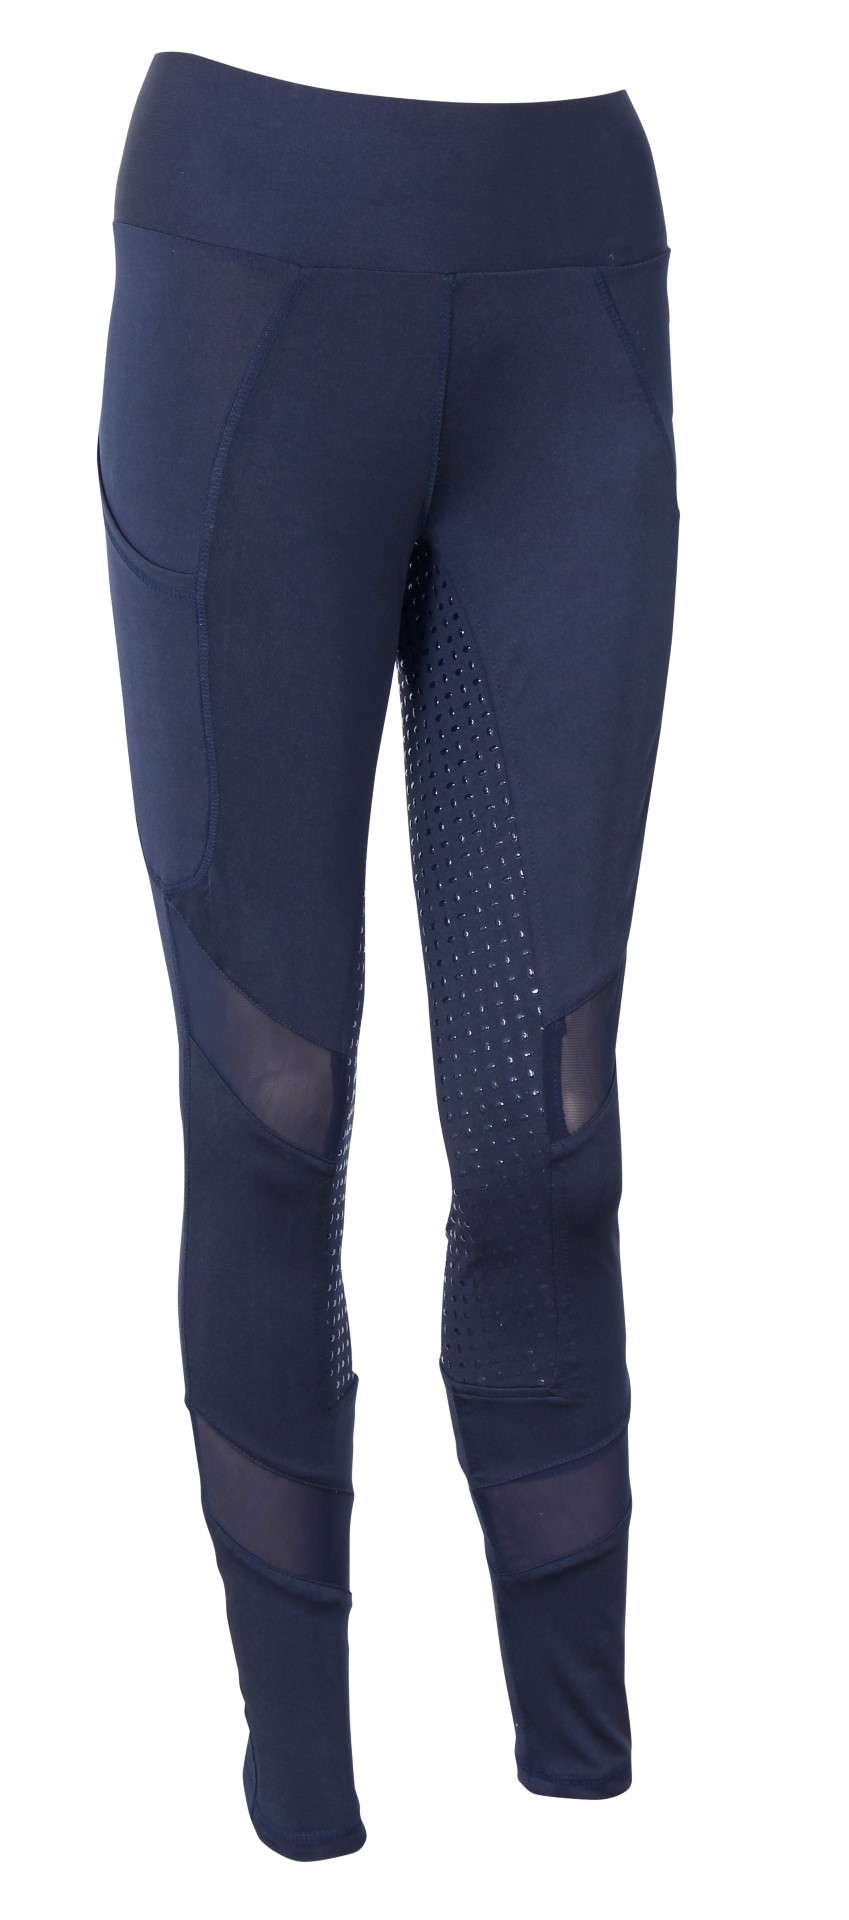 Cavallino Riding Tights